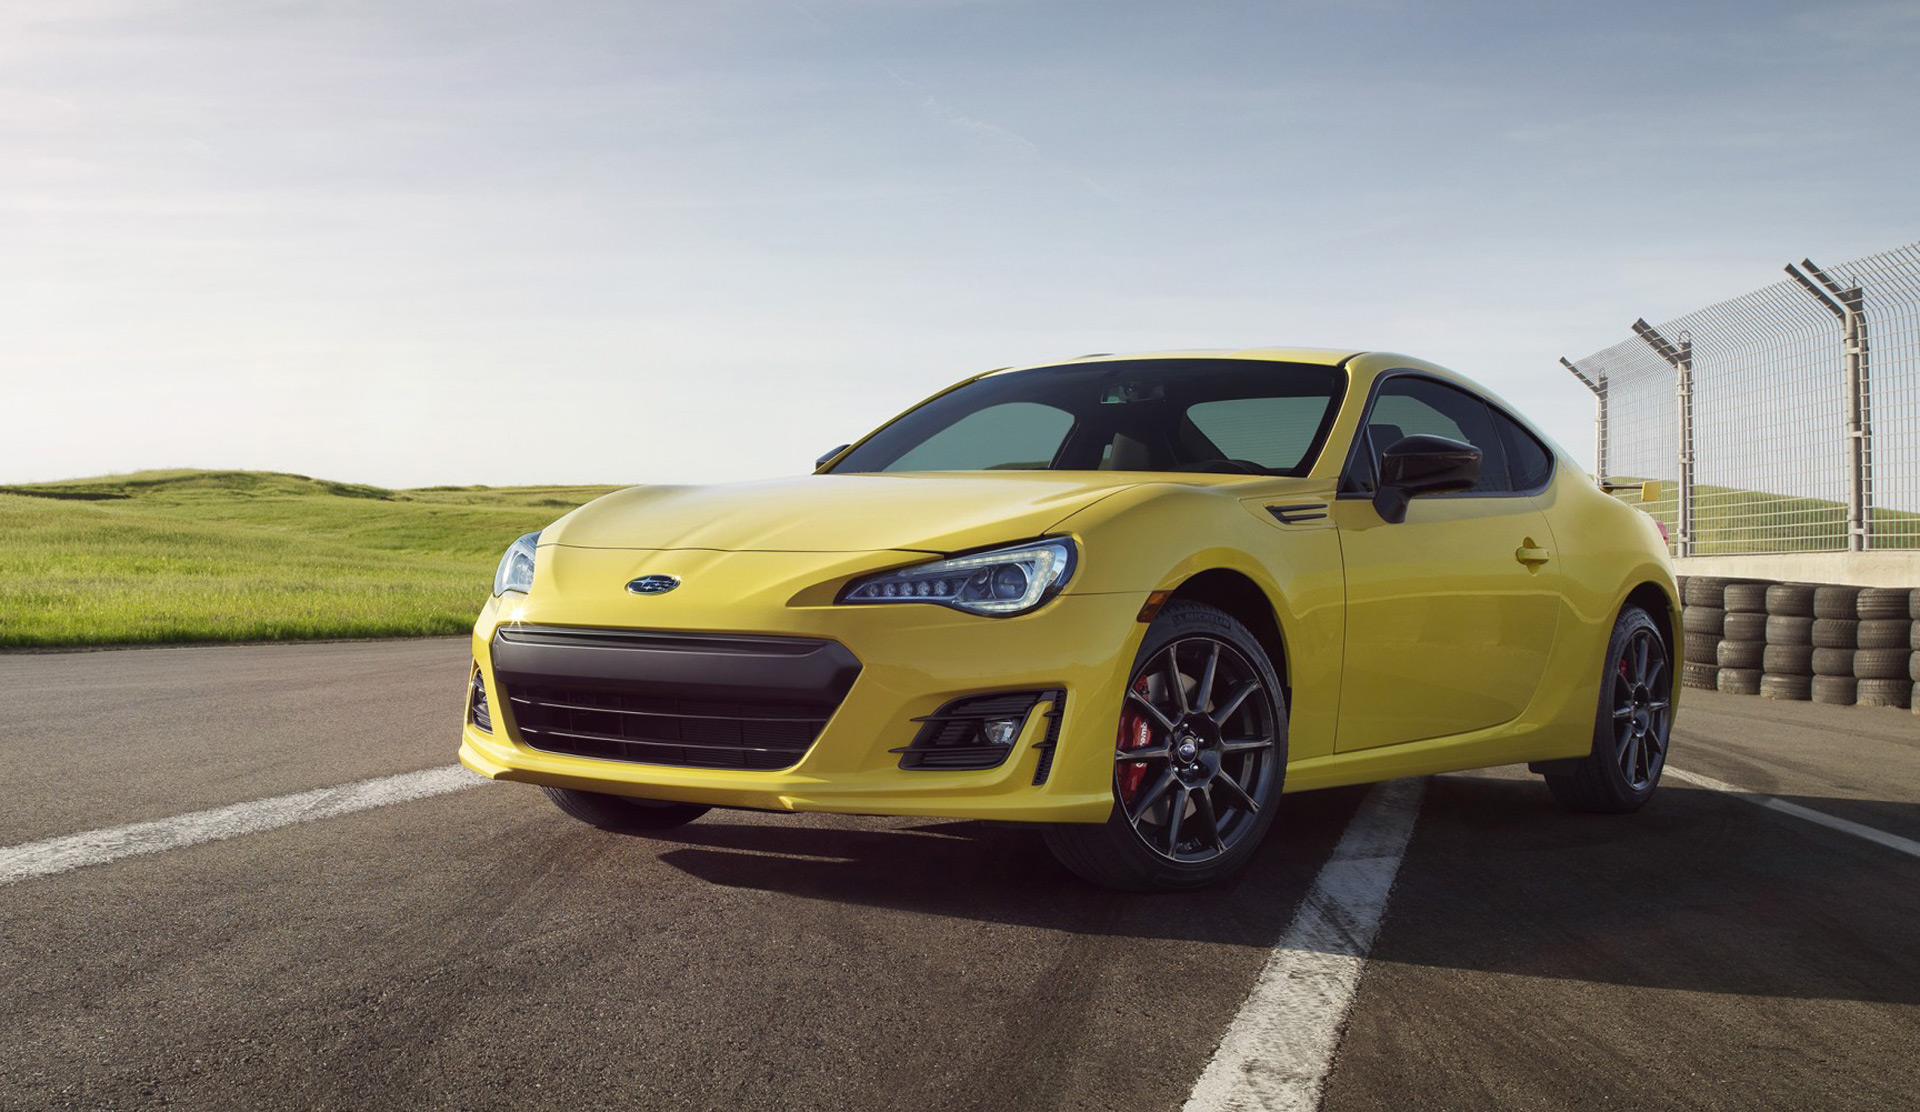 2017 Subaru Brz Gets Series Yellow Special Edition